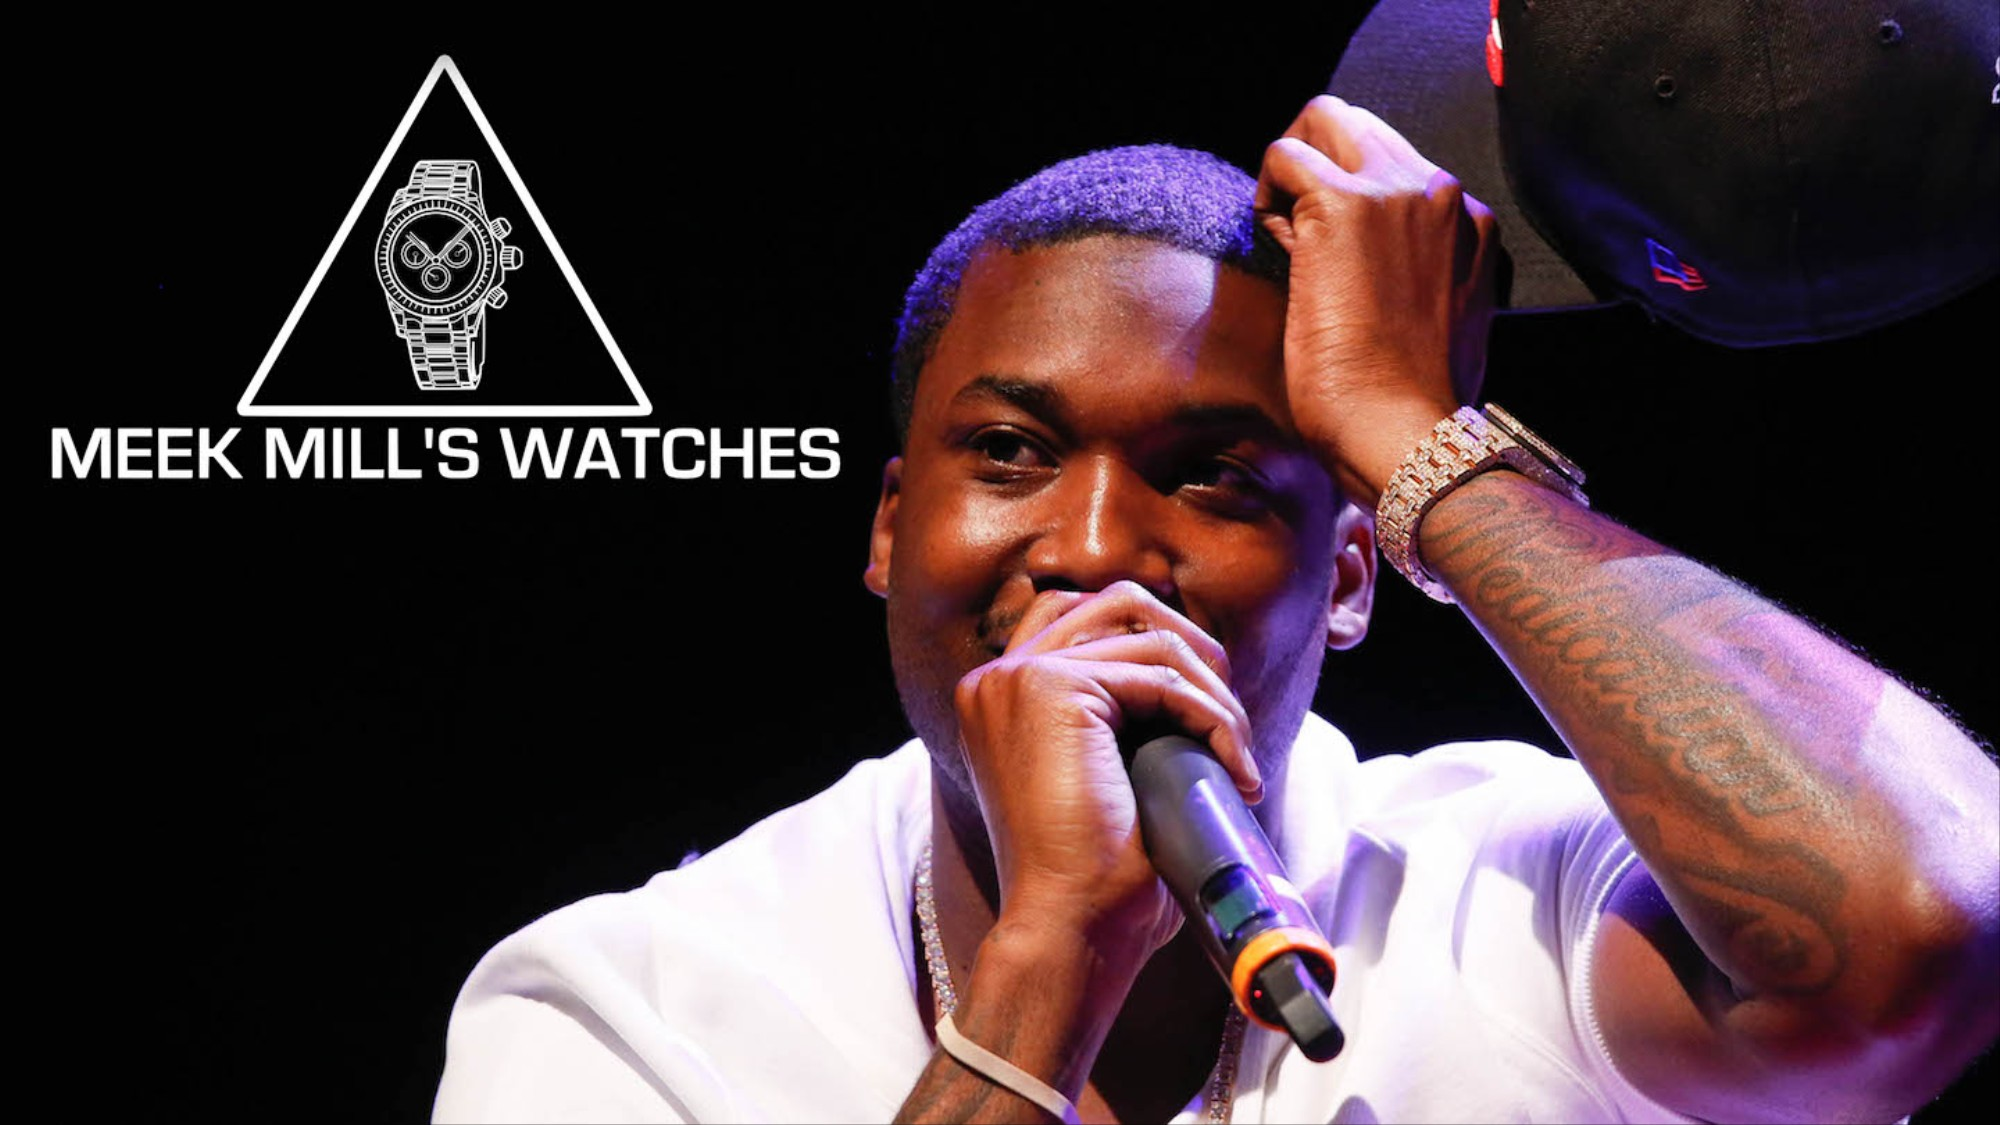 The Complete Guide to Meek Mill's Lyrics About Watches - VICE